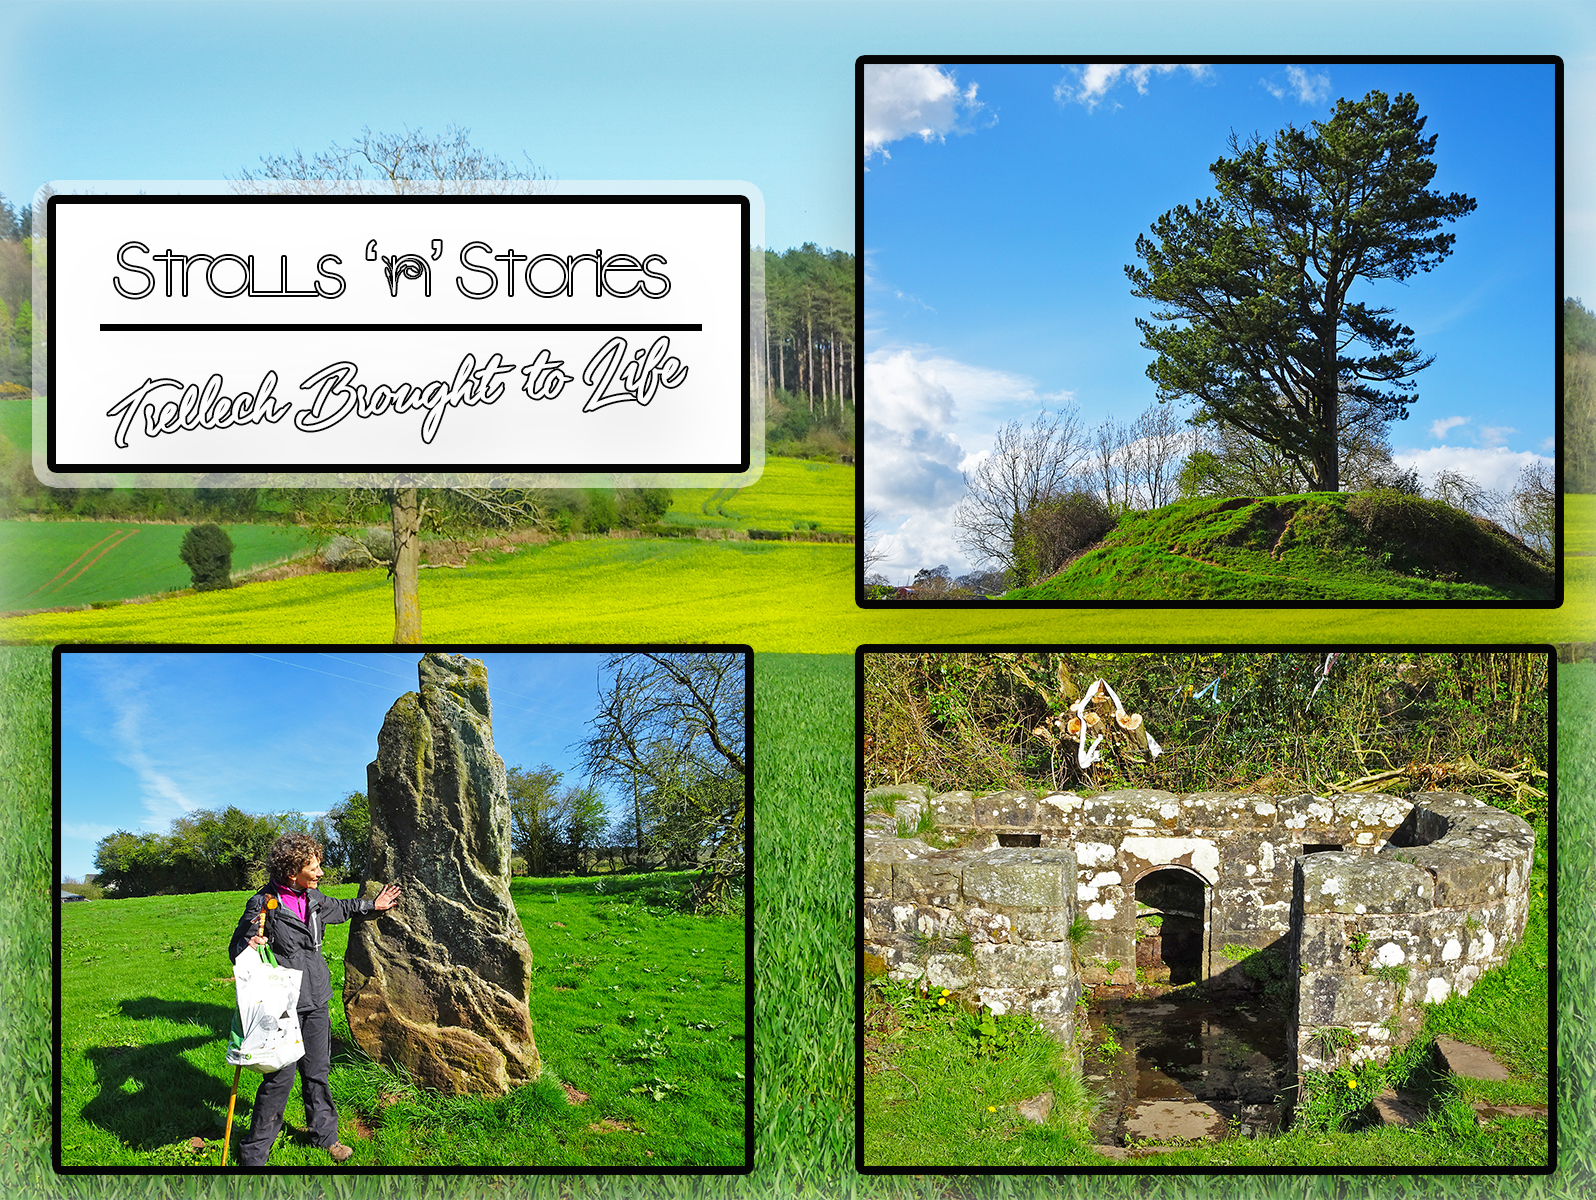 Strolls 'n' Stories Trellech Brought To Life (One Epic Road trip Blog)